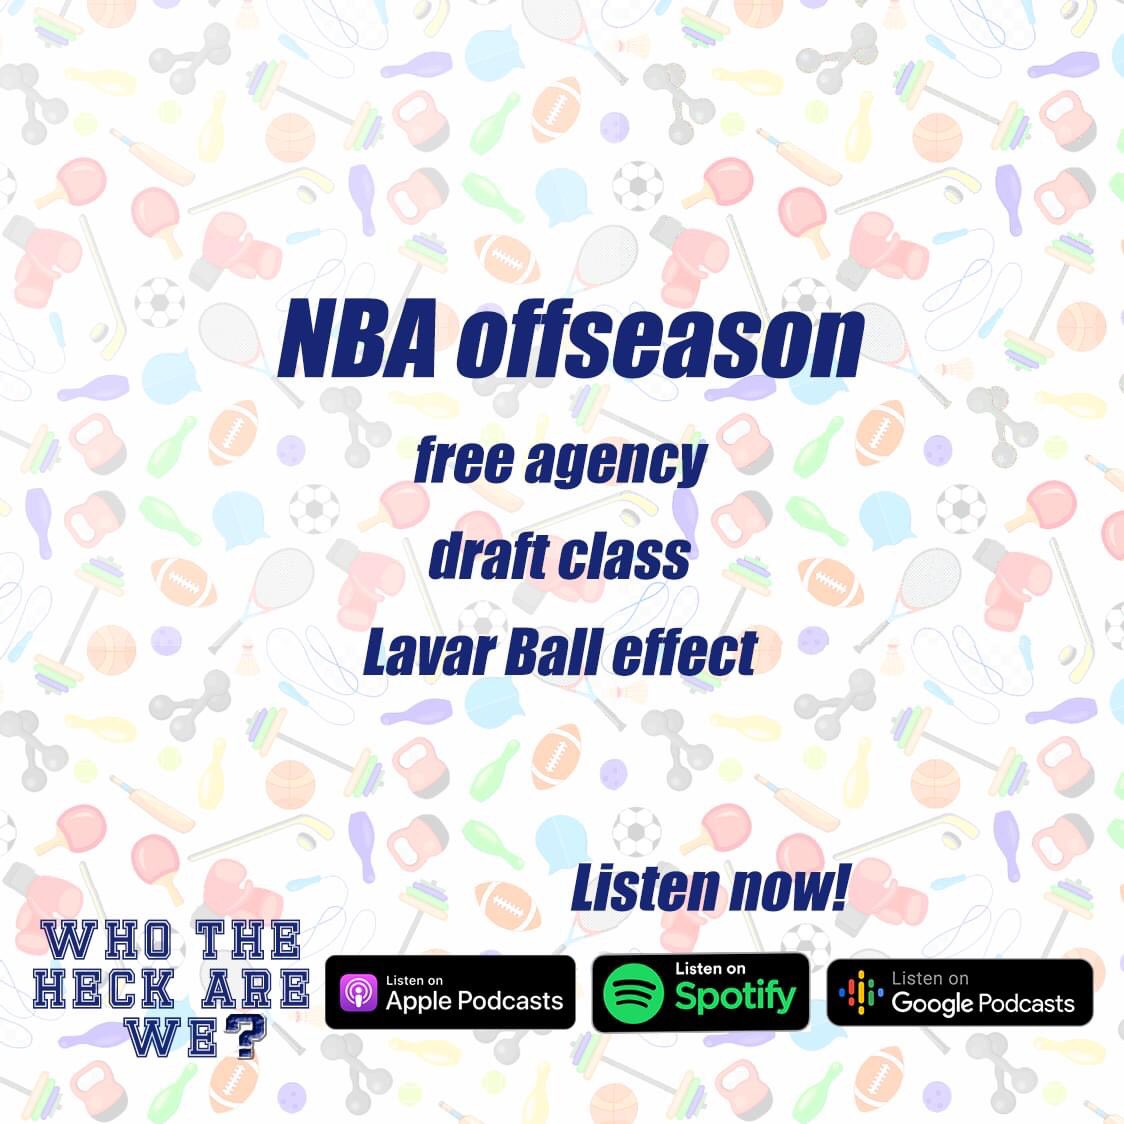 🎧 Listen on https://t.co/1LgQ4InWEK  The NBA Bubble may have ended but the action continues off the court! The squad runs through free agency and this year's draft class.  And what is the so-called Lavar Ball effect? Join us to find out! https://t.co/yYiz2Ky8Ft